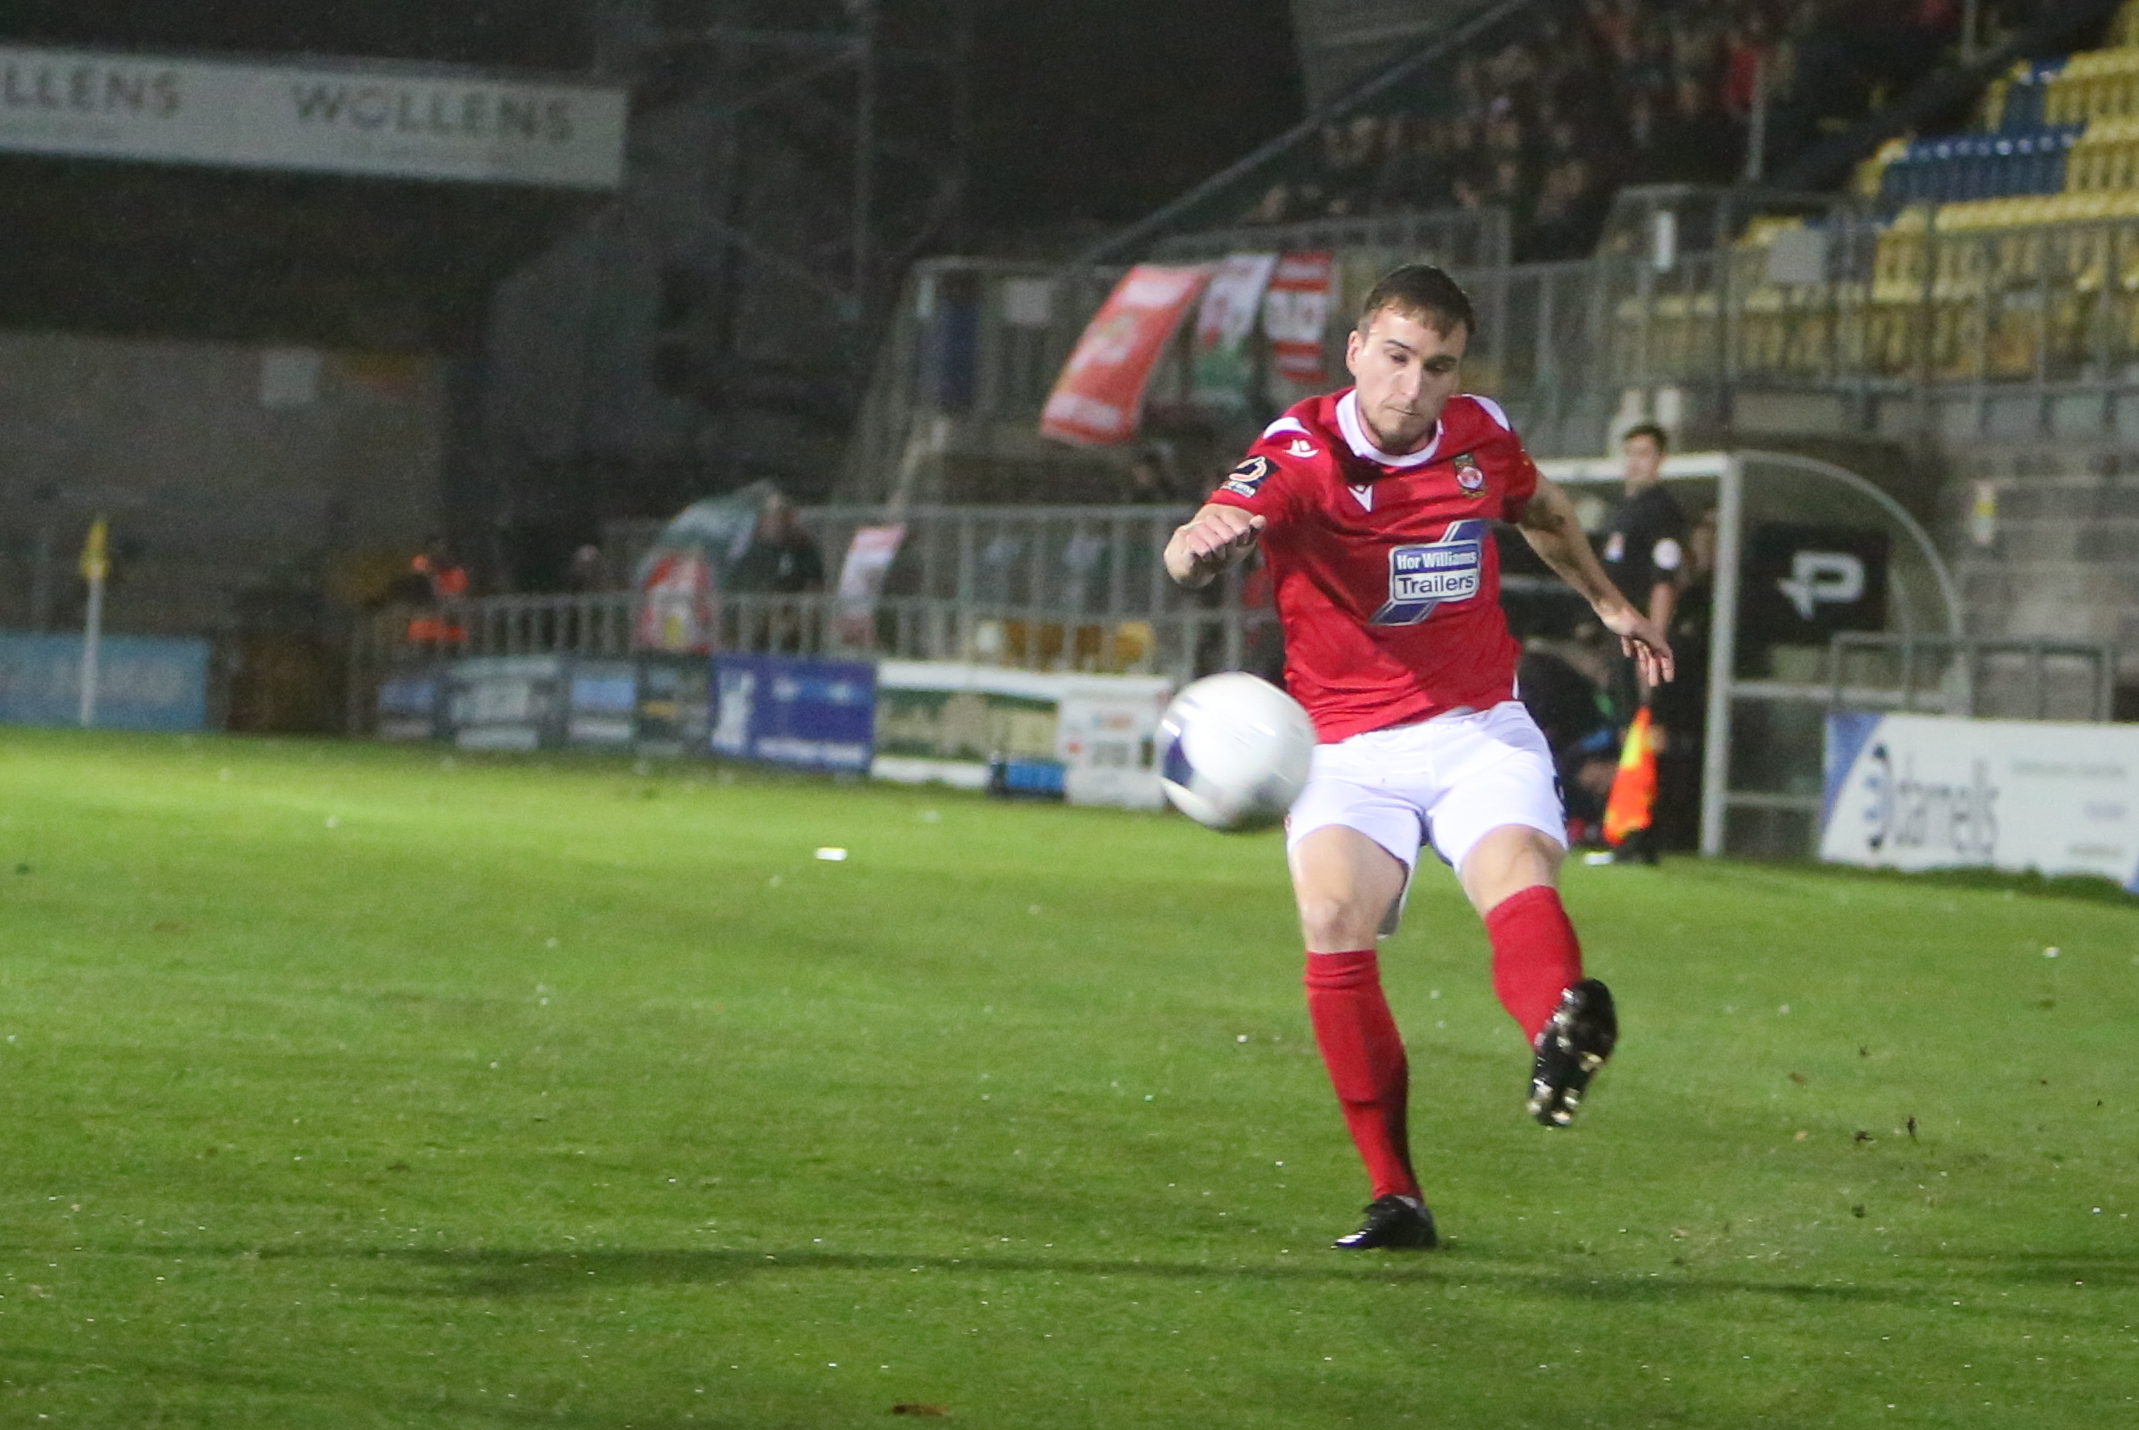 Luke Young wants a Wrexham AFC win to close the gap on fellow strugglers Fylde